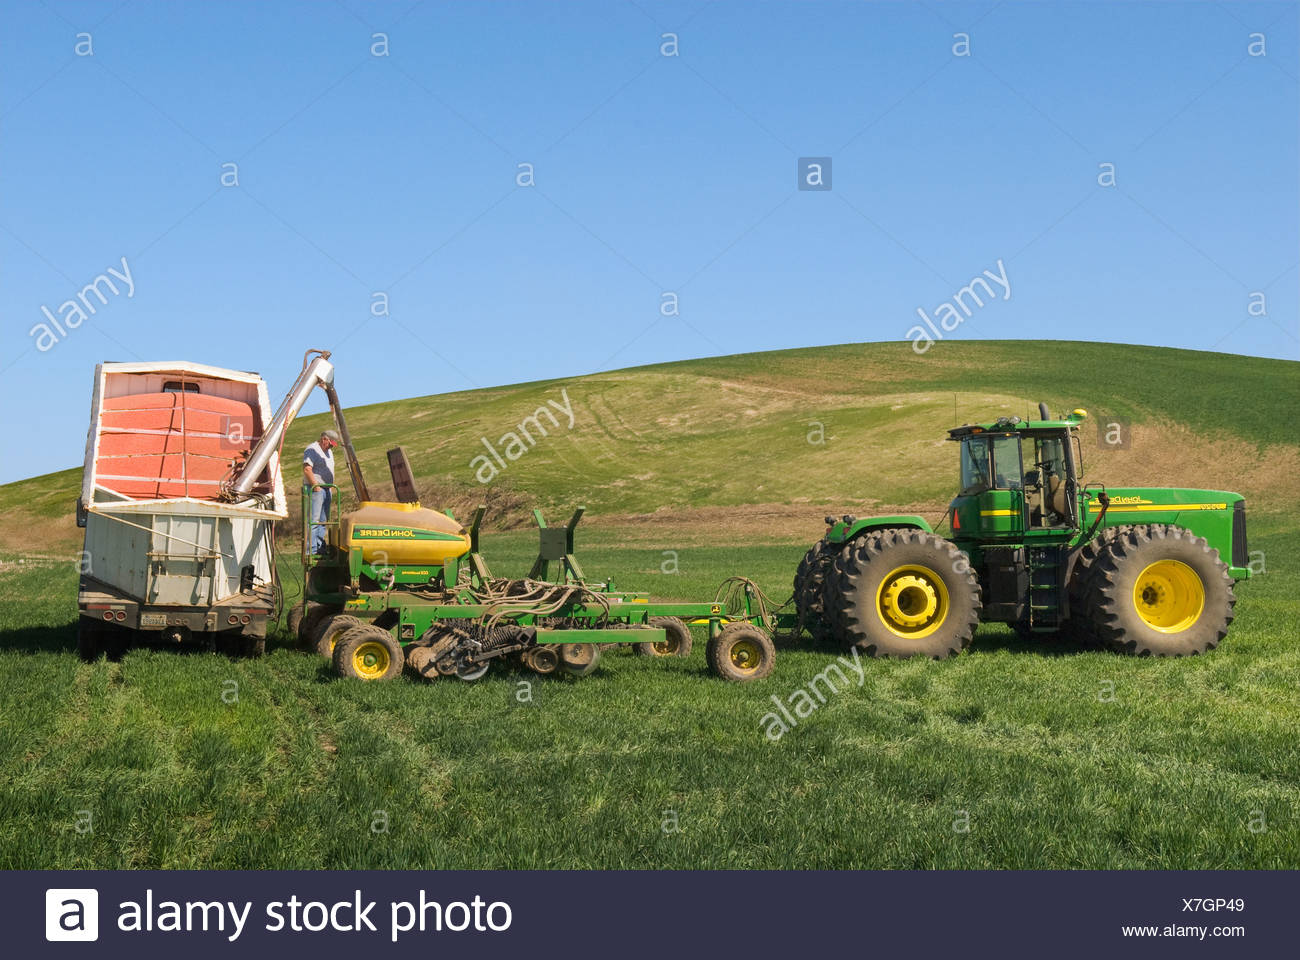 Loading an air seeder with wheat seeds to replant snow damaged areas of winter wheat in the rolling hills of the Region / USA. - Stock Image